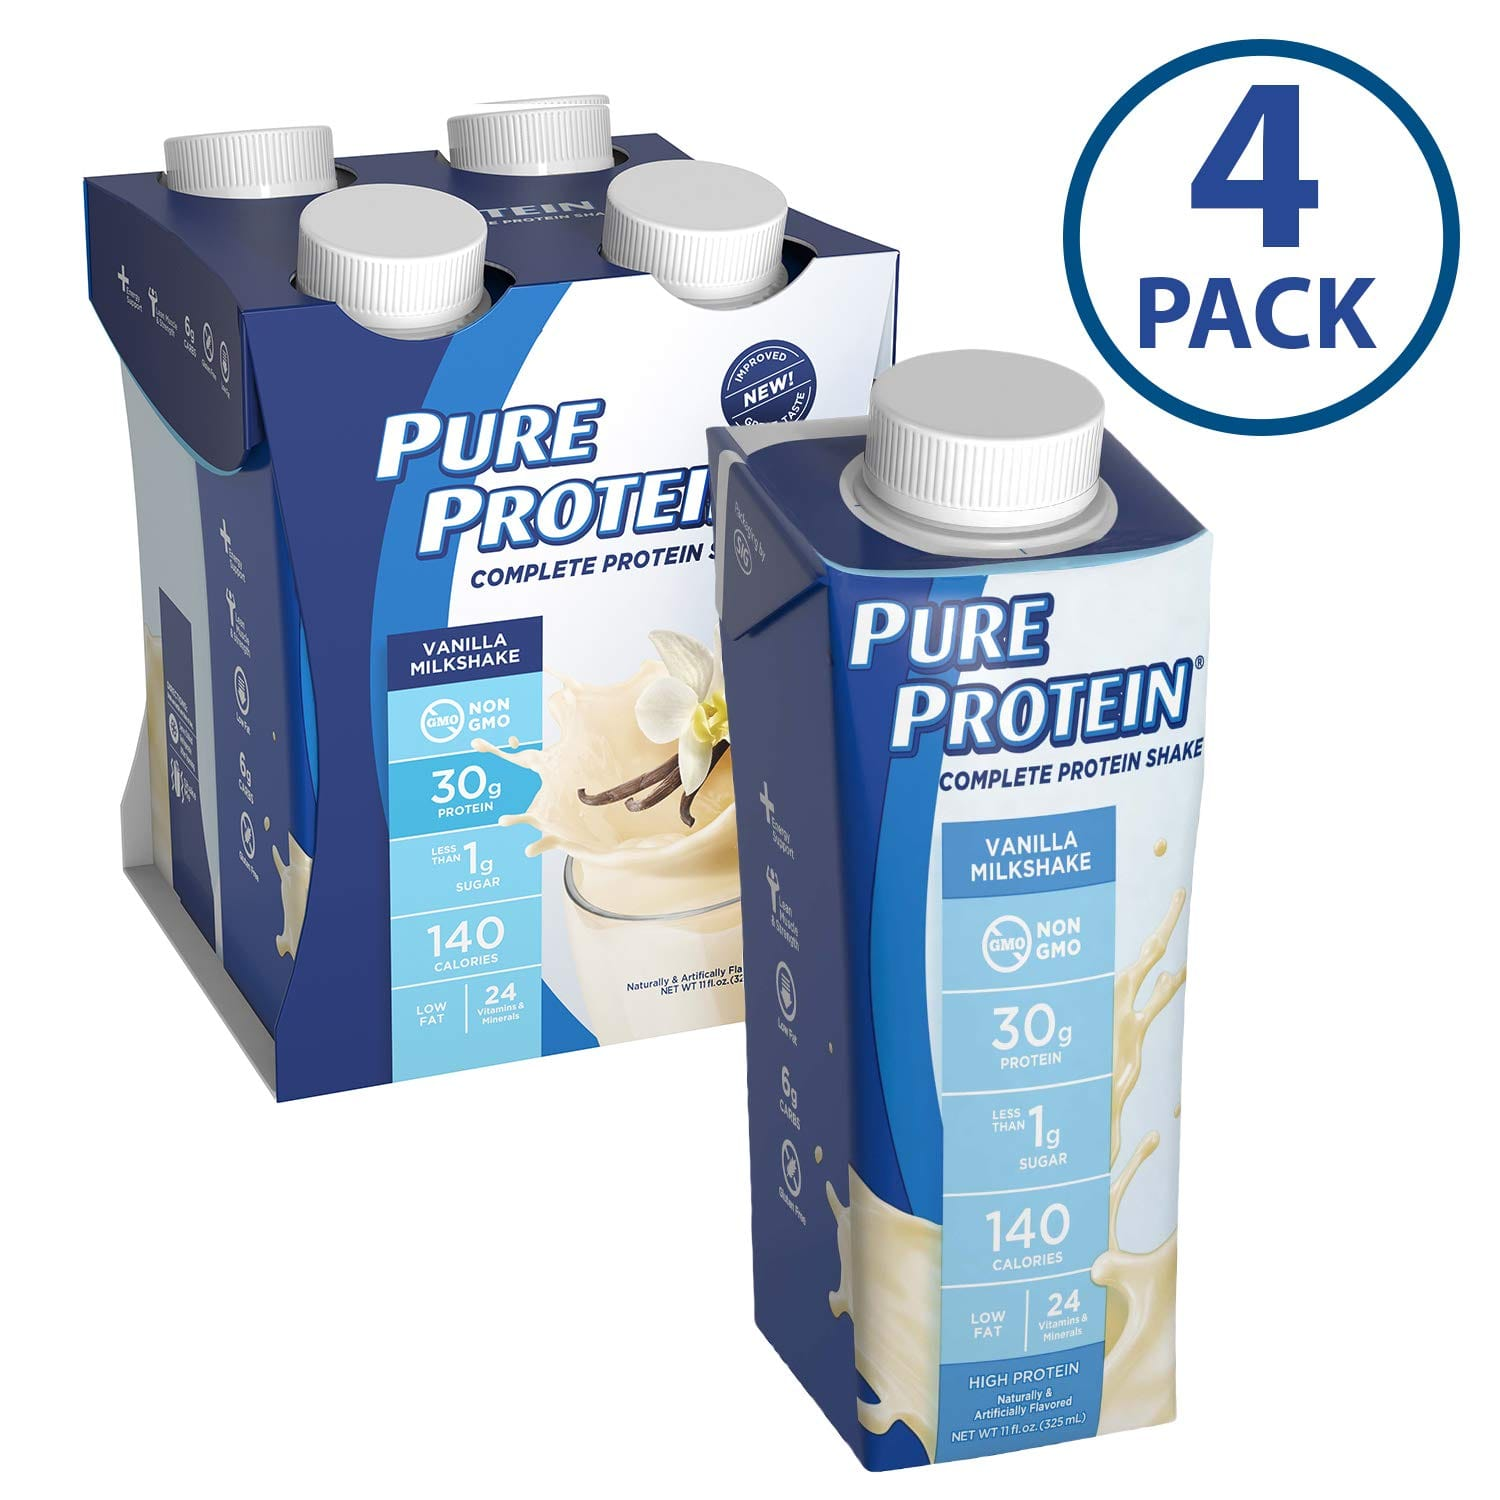 Pure Protein Complete Meal Replacement Shakes, Vanilla Milkshake, 11oz, 4 Count $6.98